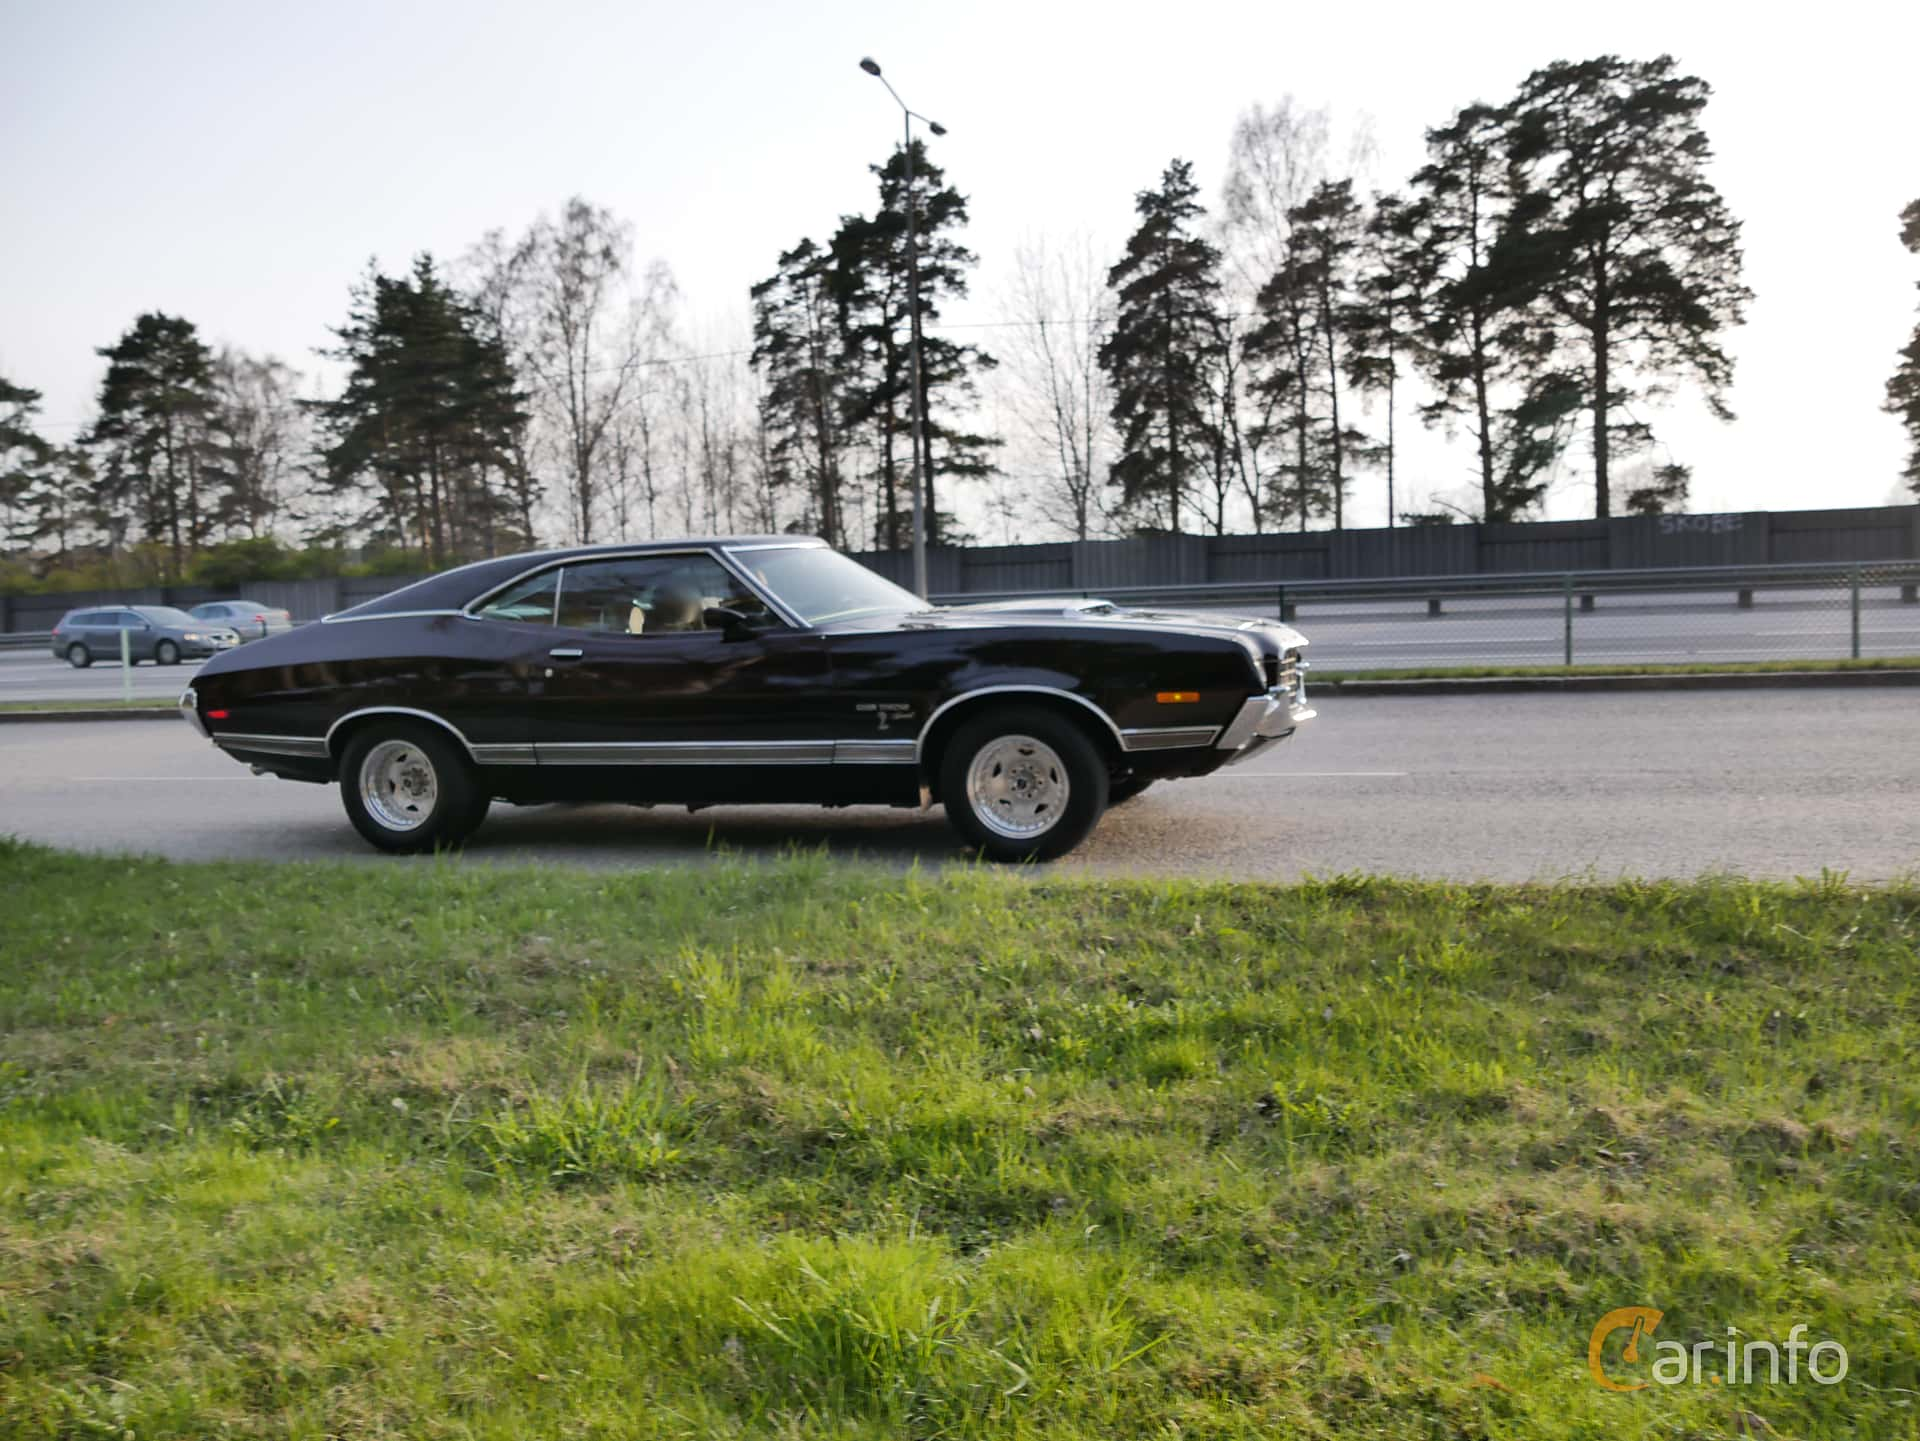 2 Images Of Ford Gran Torino Sport Sportsroof 58 V8 Automatic 1975 Side 270ps 1972 At Valborgscruising